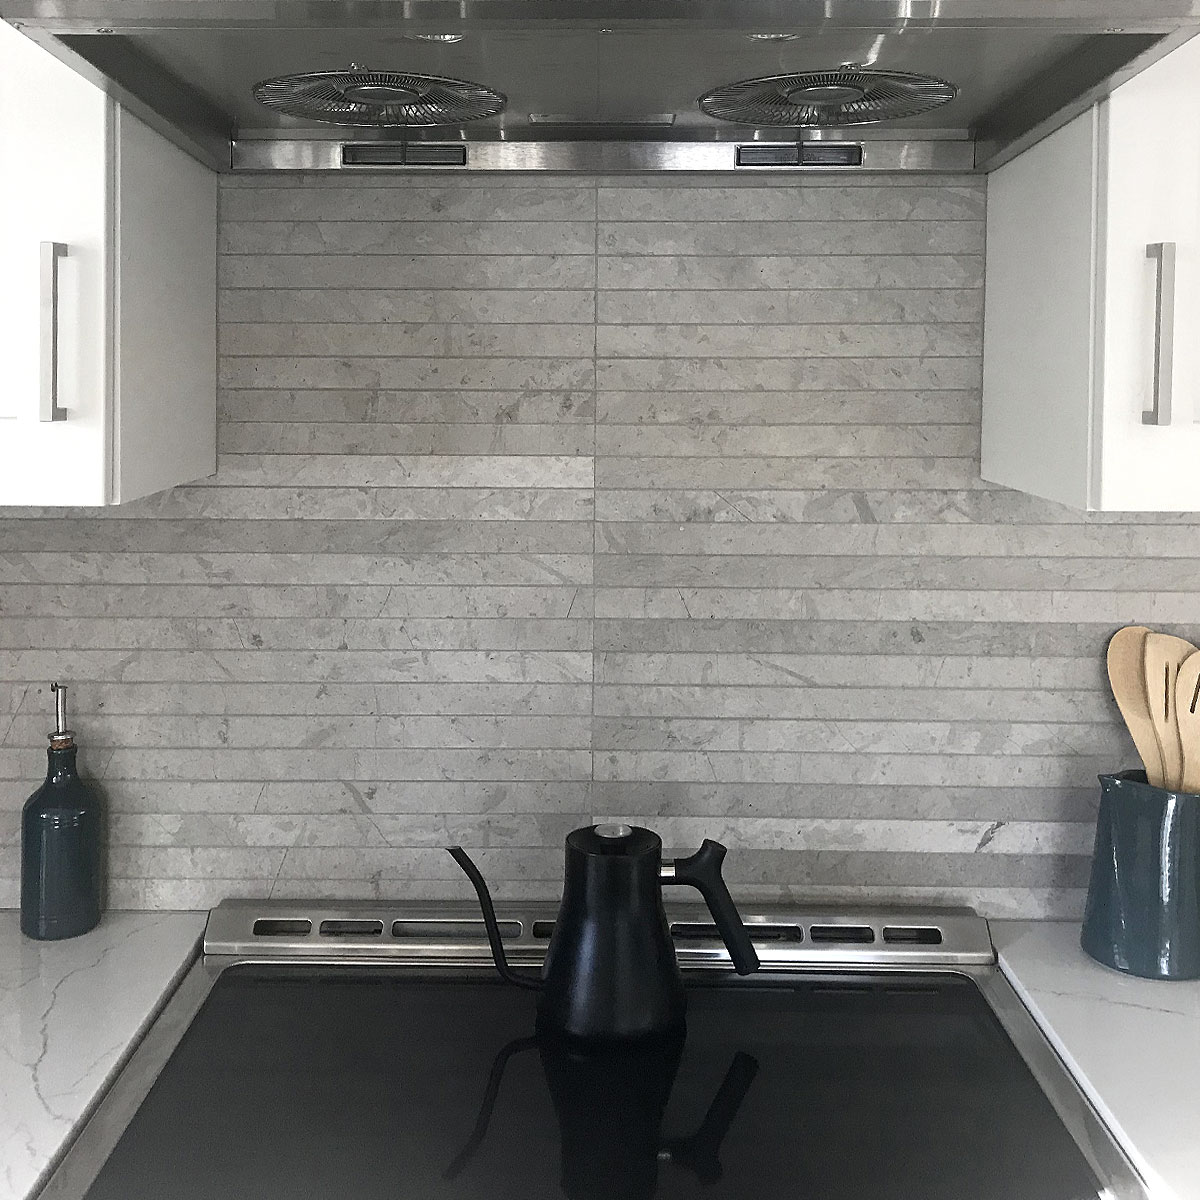 - MODERN Light Gray Subway Backsplash Tile (Contemporary Design!)